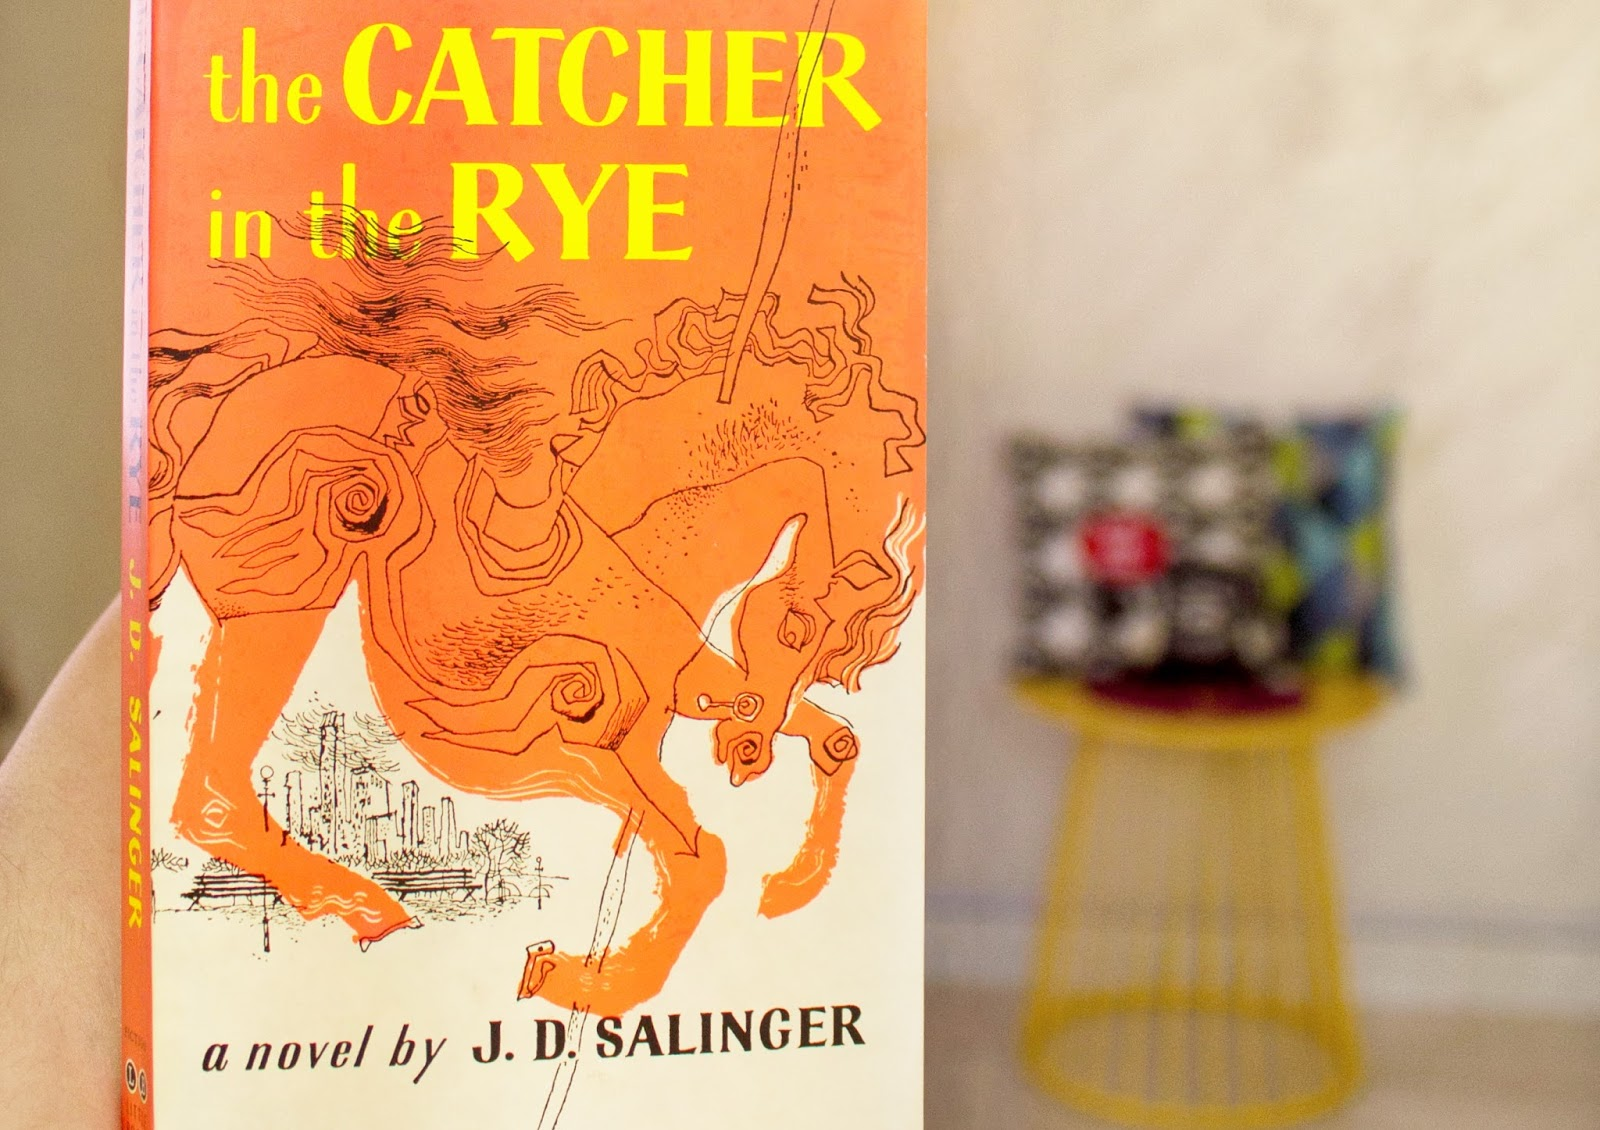 an overview of the characters in the novel catcher in the rye by j d salinger The catcher in the rye by j d salinger (book analysis): detailed summary, analysis and reading guide - ebook written by bright summaries read this book using google play books app on your pc, android, ios devices.